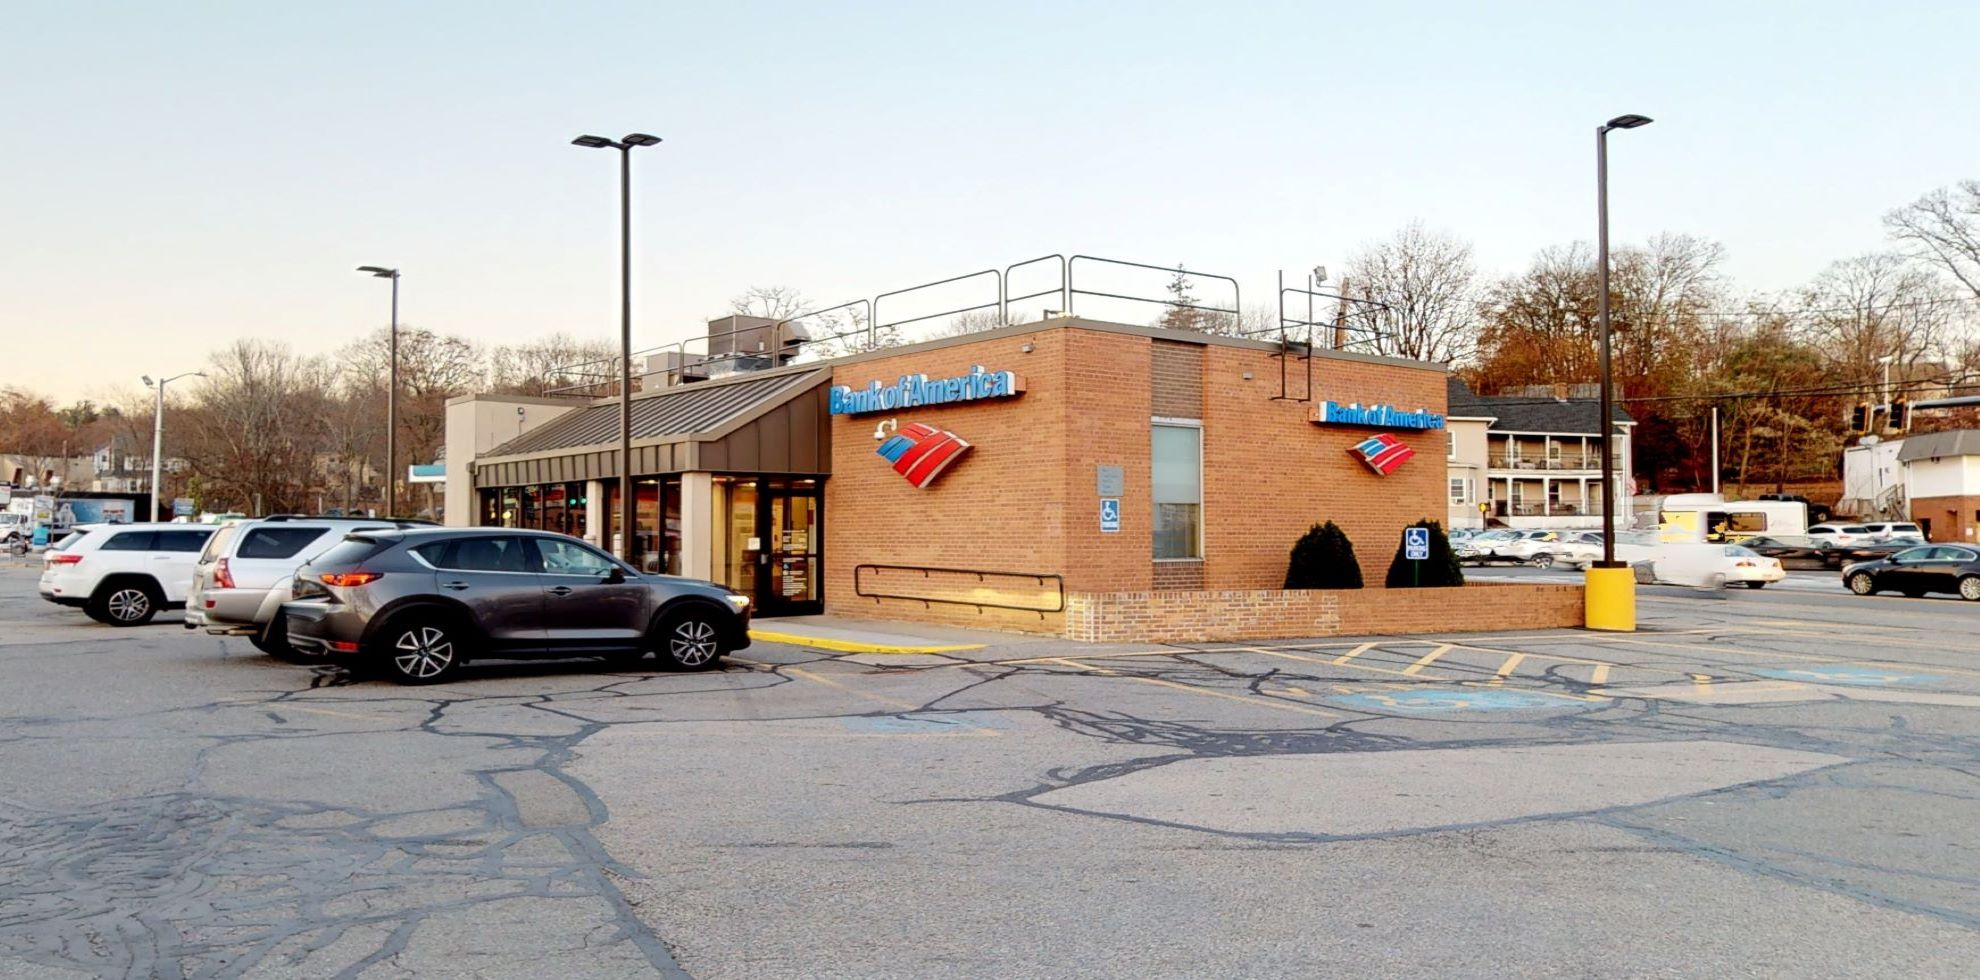 Bank of America financial center with drive-thru ATM   638 Chandler St, Worcester, MA 01602